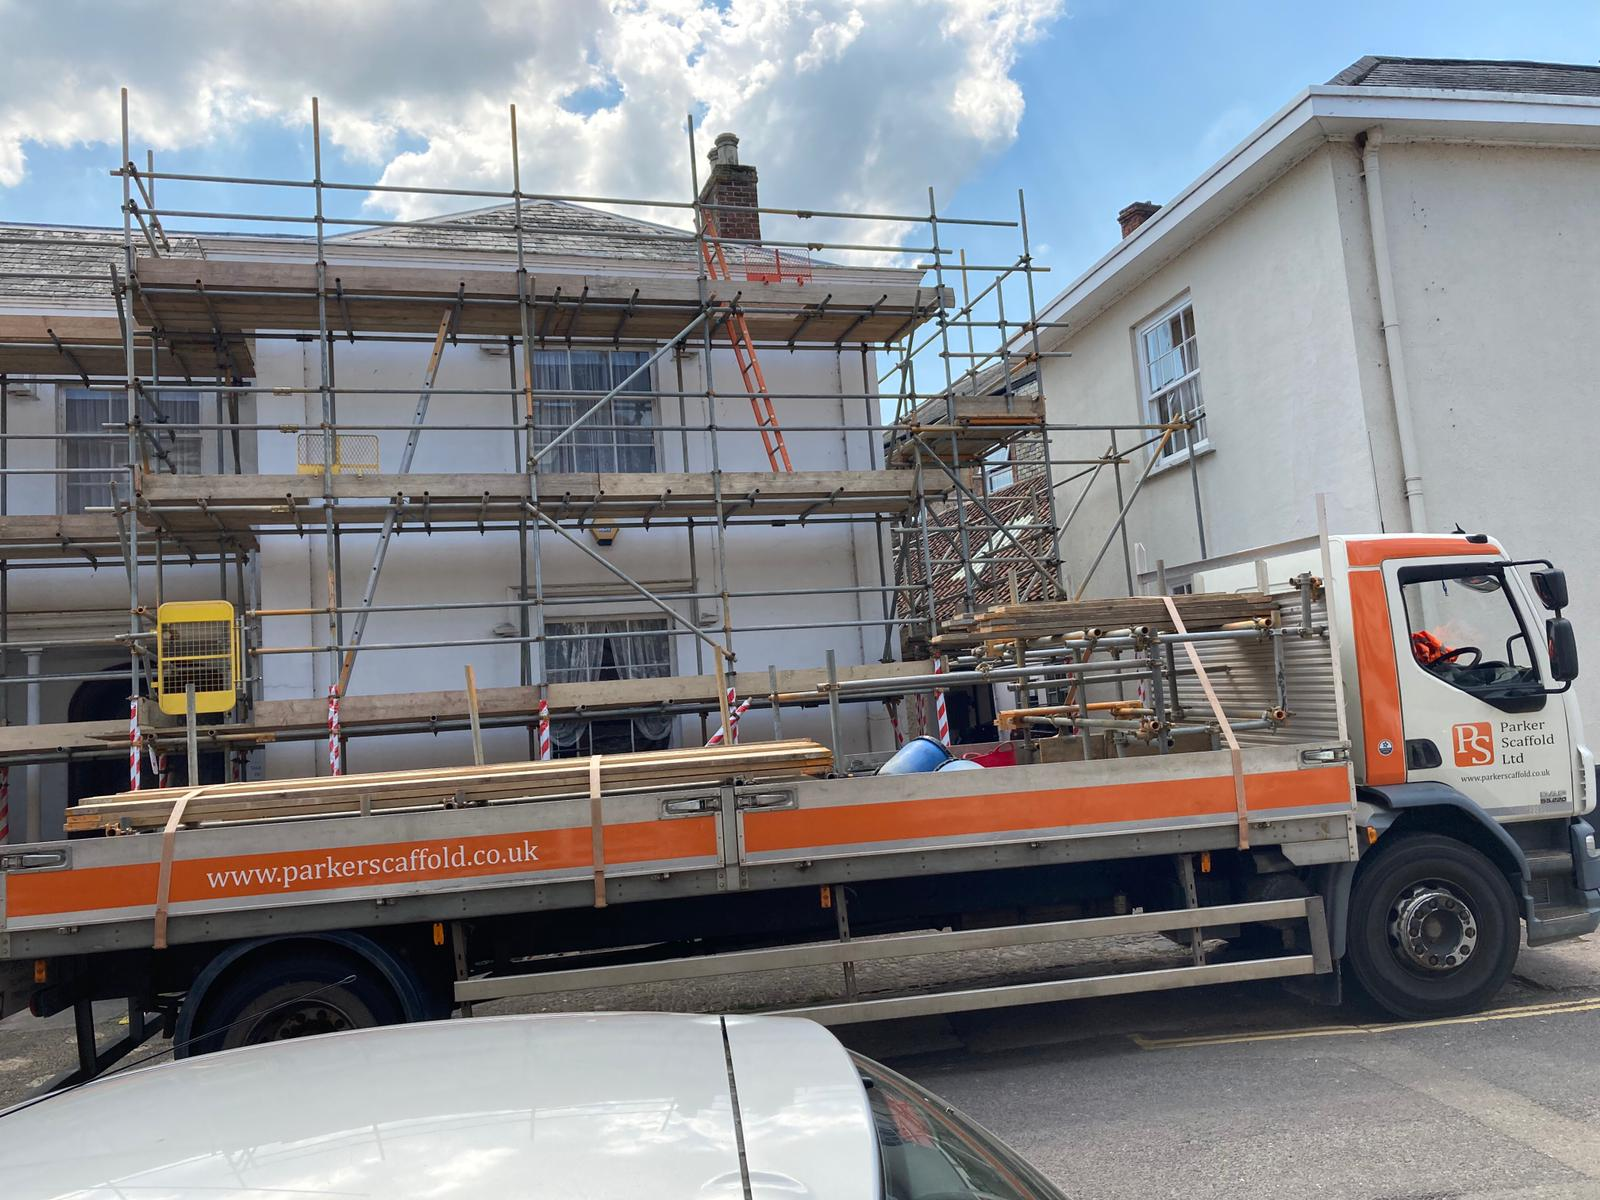 Parker Scaffold Scaffolding in Taunton and Somerset